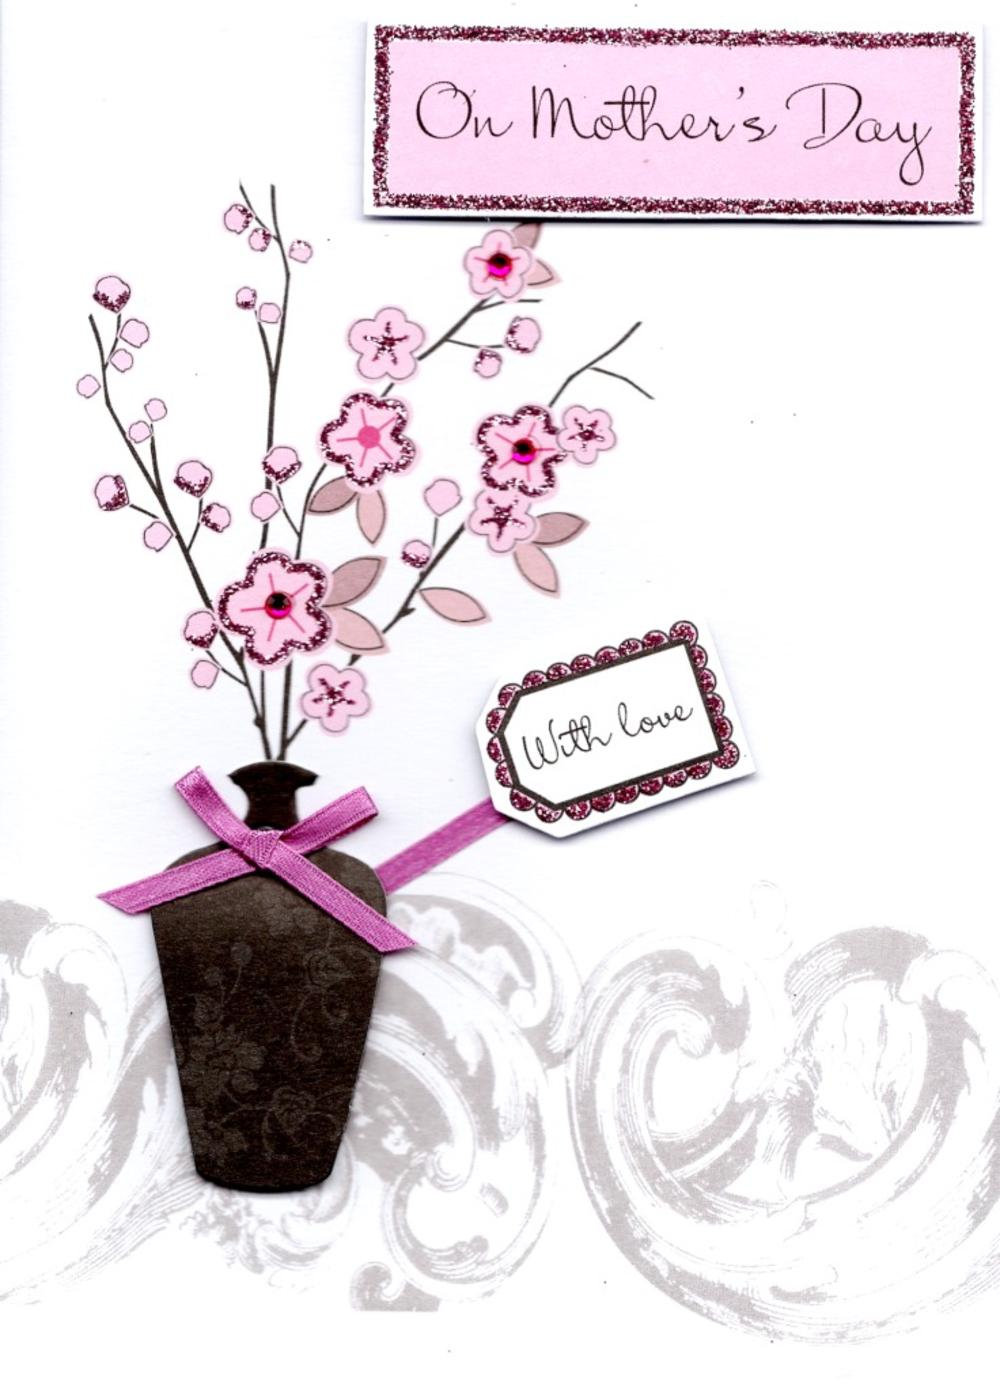 With Love On Mother's Day Embellished Card